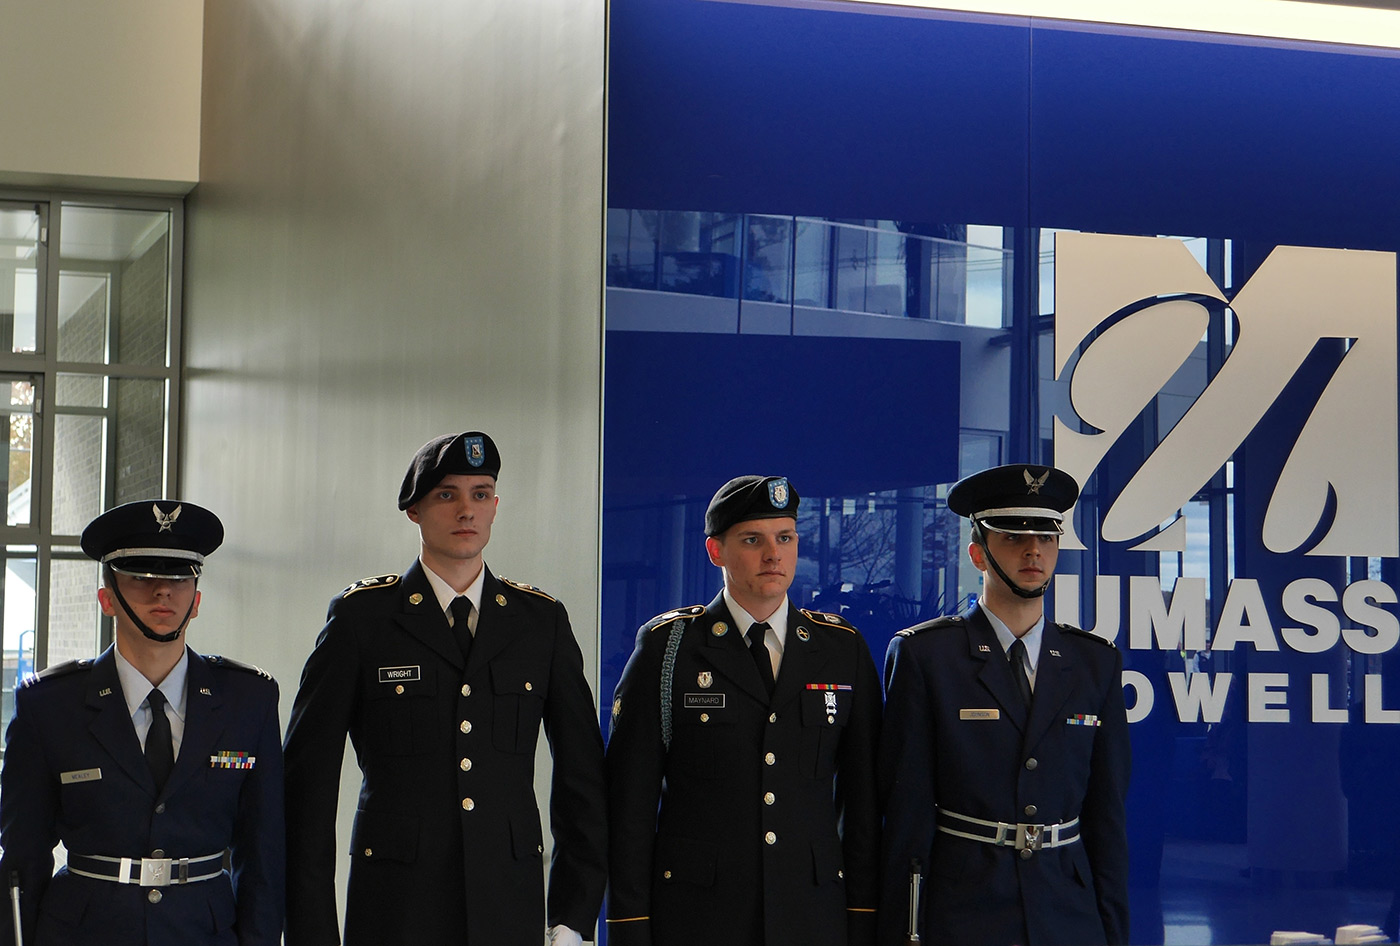 military-students-in-uniform-uml-backdrop